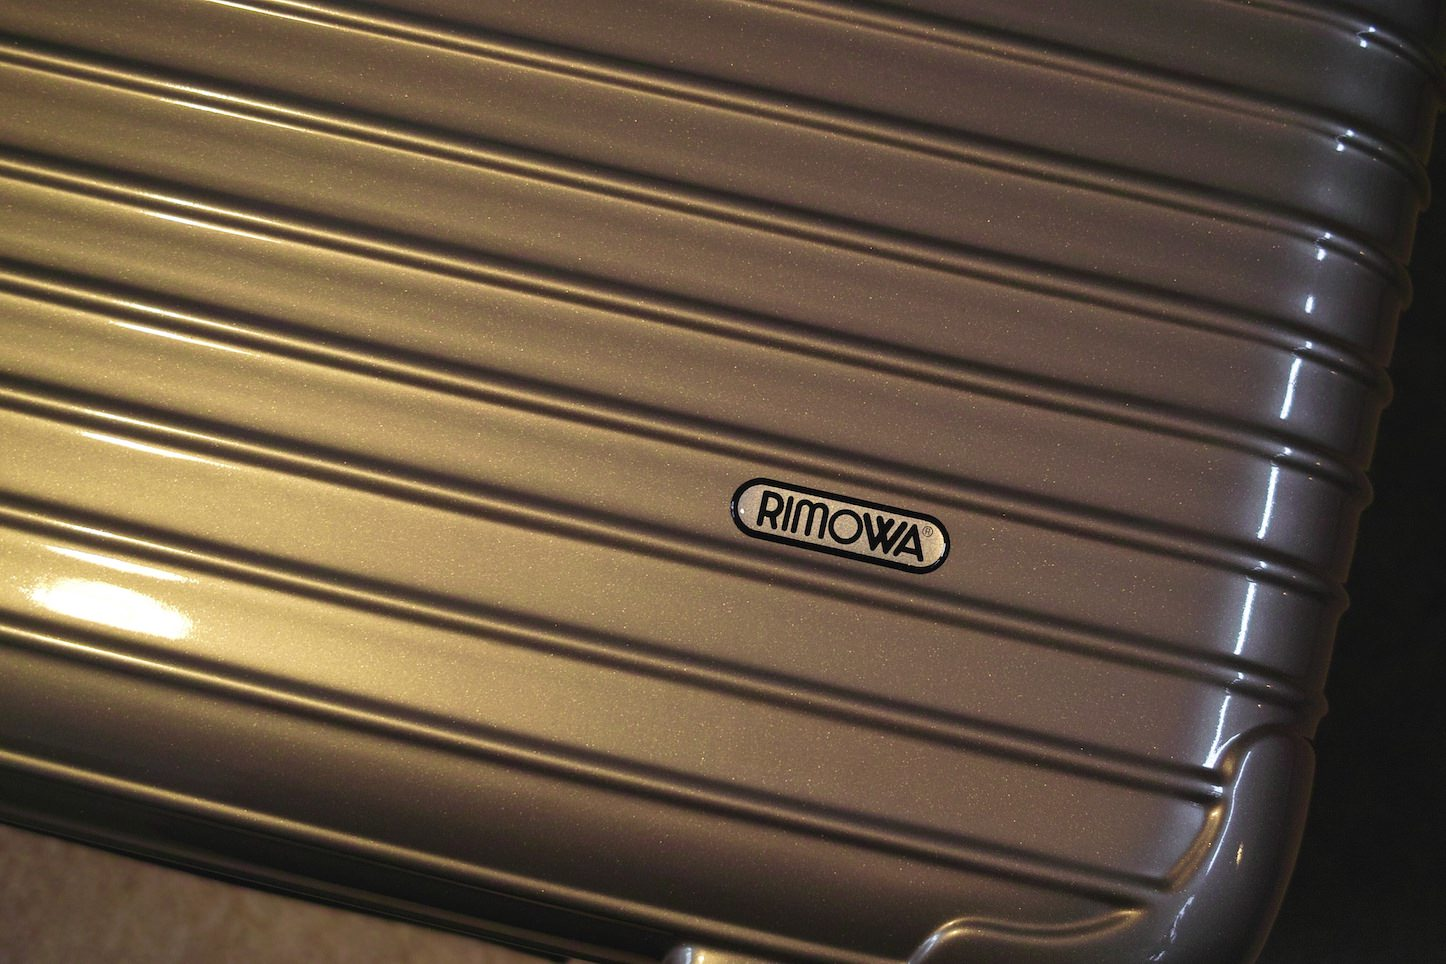 Rimowa is bought by LVMH